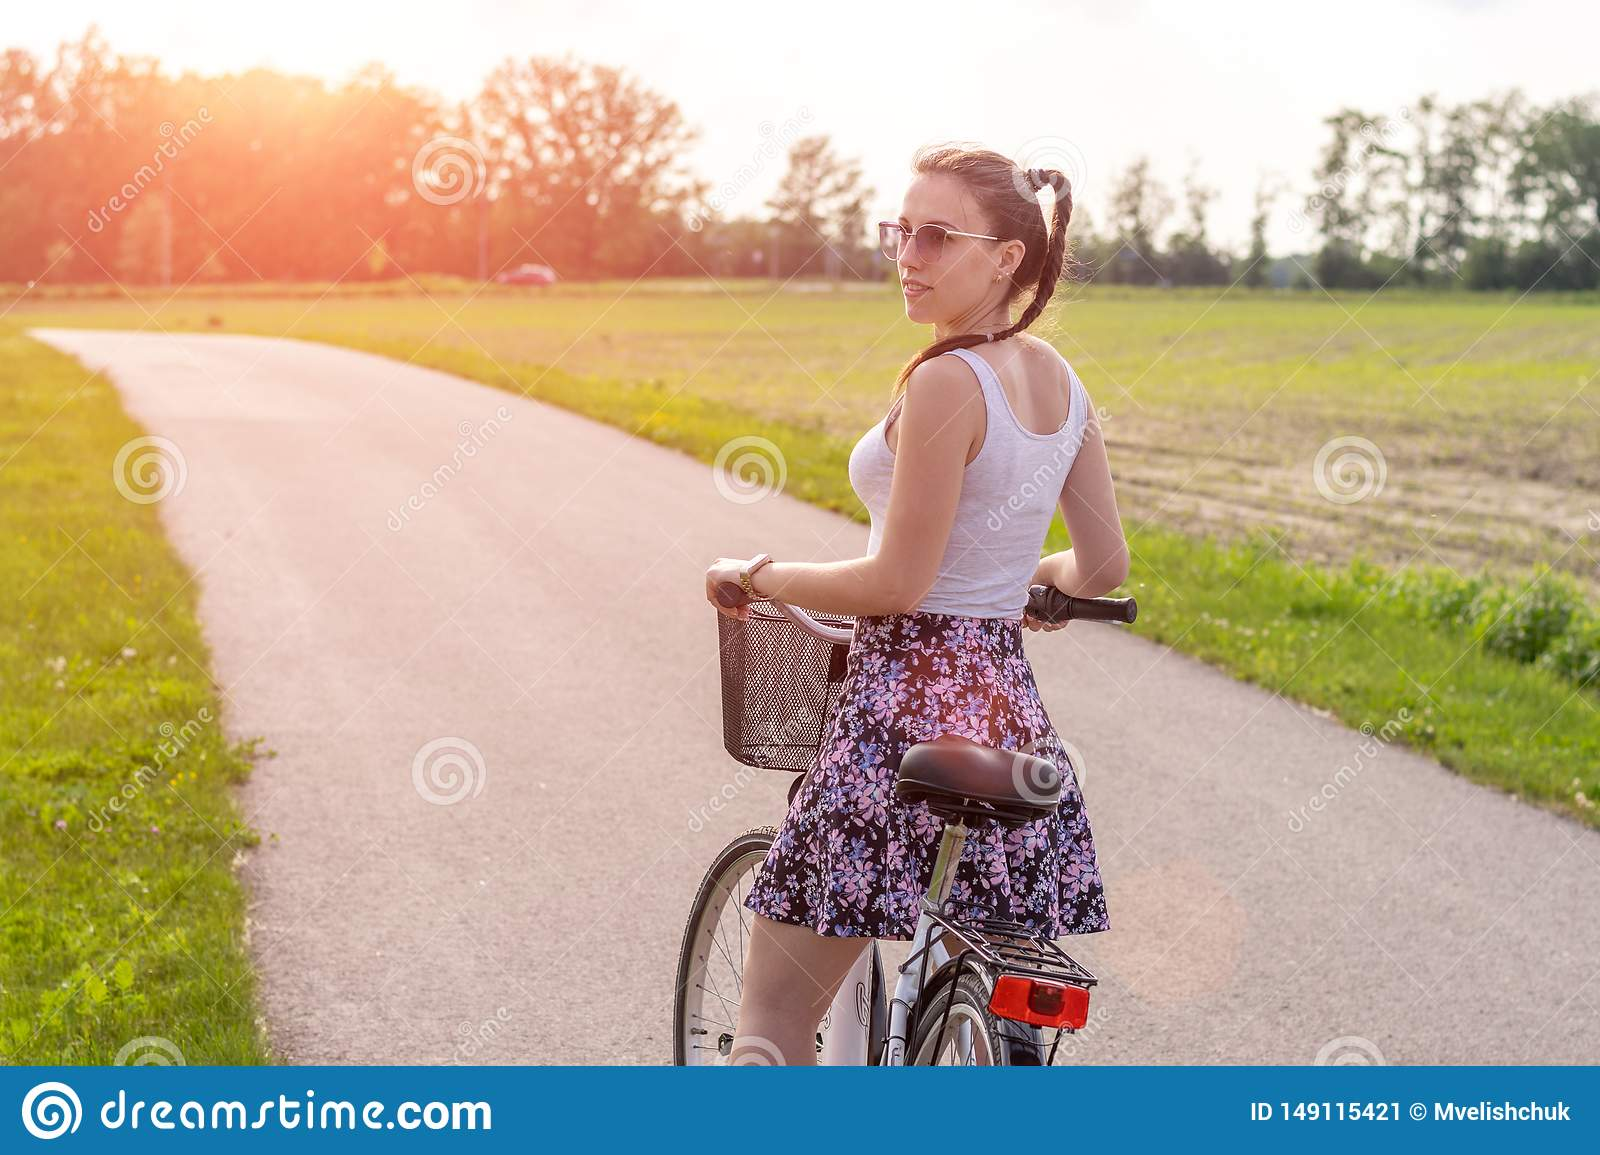 Girl with bike at the summer sunset on the road in the city park. Cycle closeup wheel on blurred summer background. Cycling down t